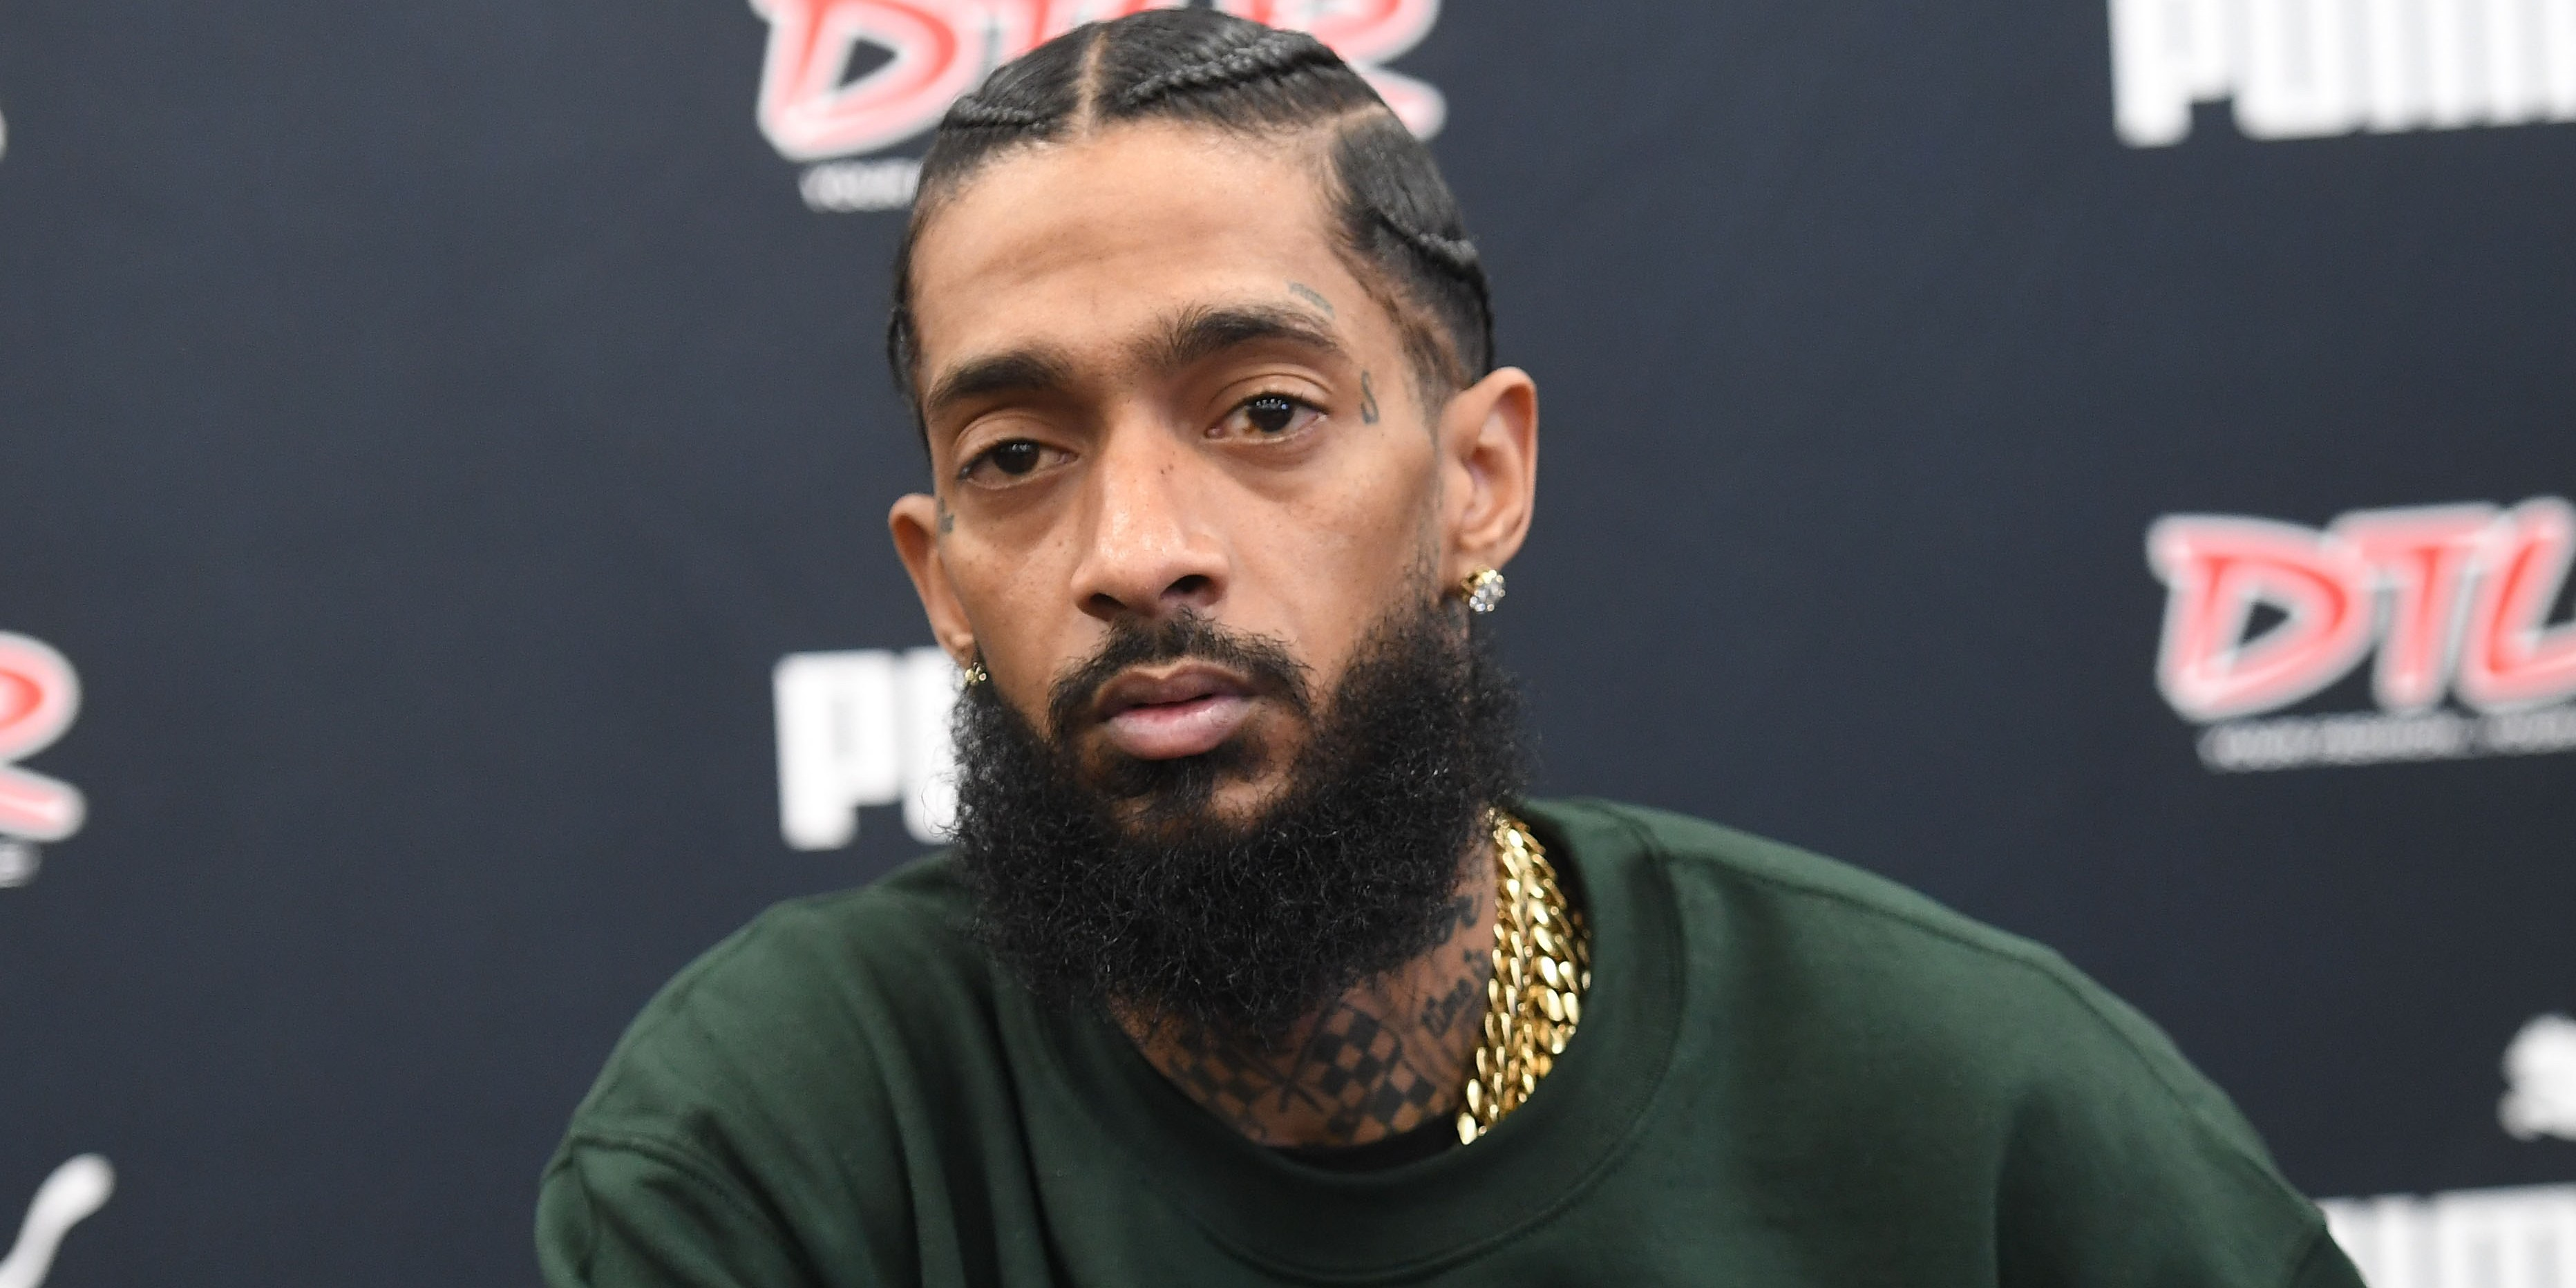 Hip hop this week: the world mourns the loss of Nipsey Hussle